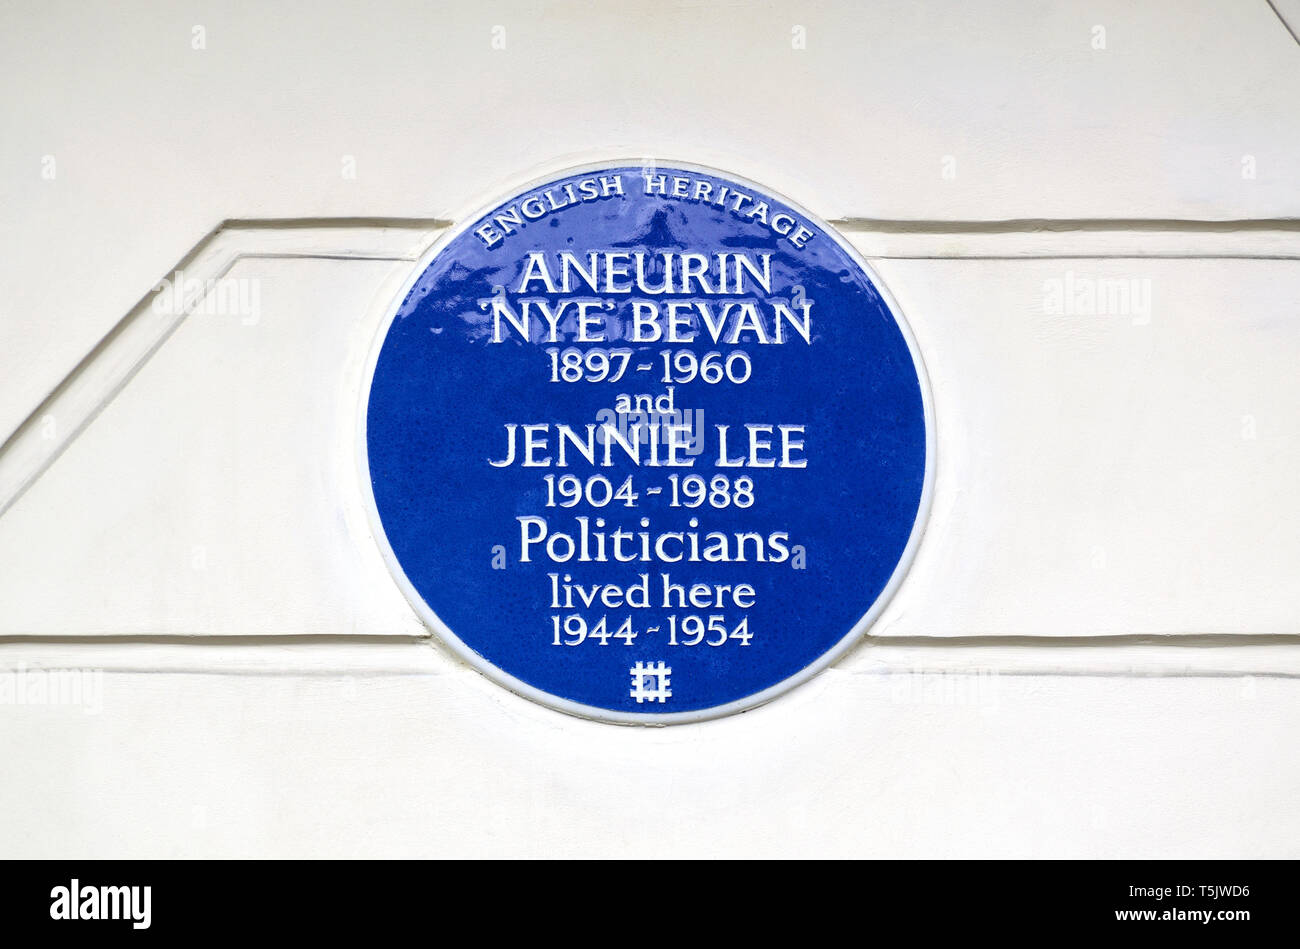 London, England, UK. Commemorative Blue Plaque: Aneurin 'Nye' Bevan and Jennie Lee (respectively founders of the NHS and the Open University) lived .... - Stock Image